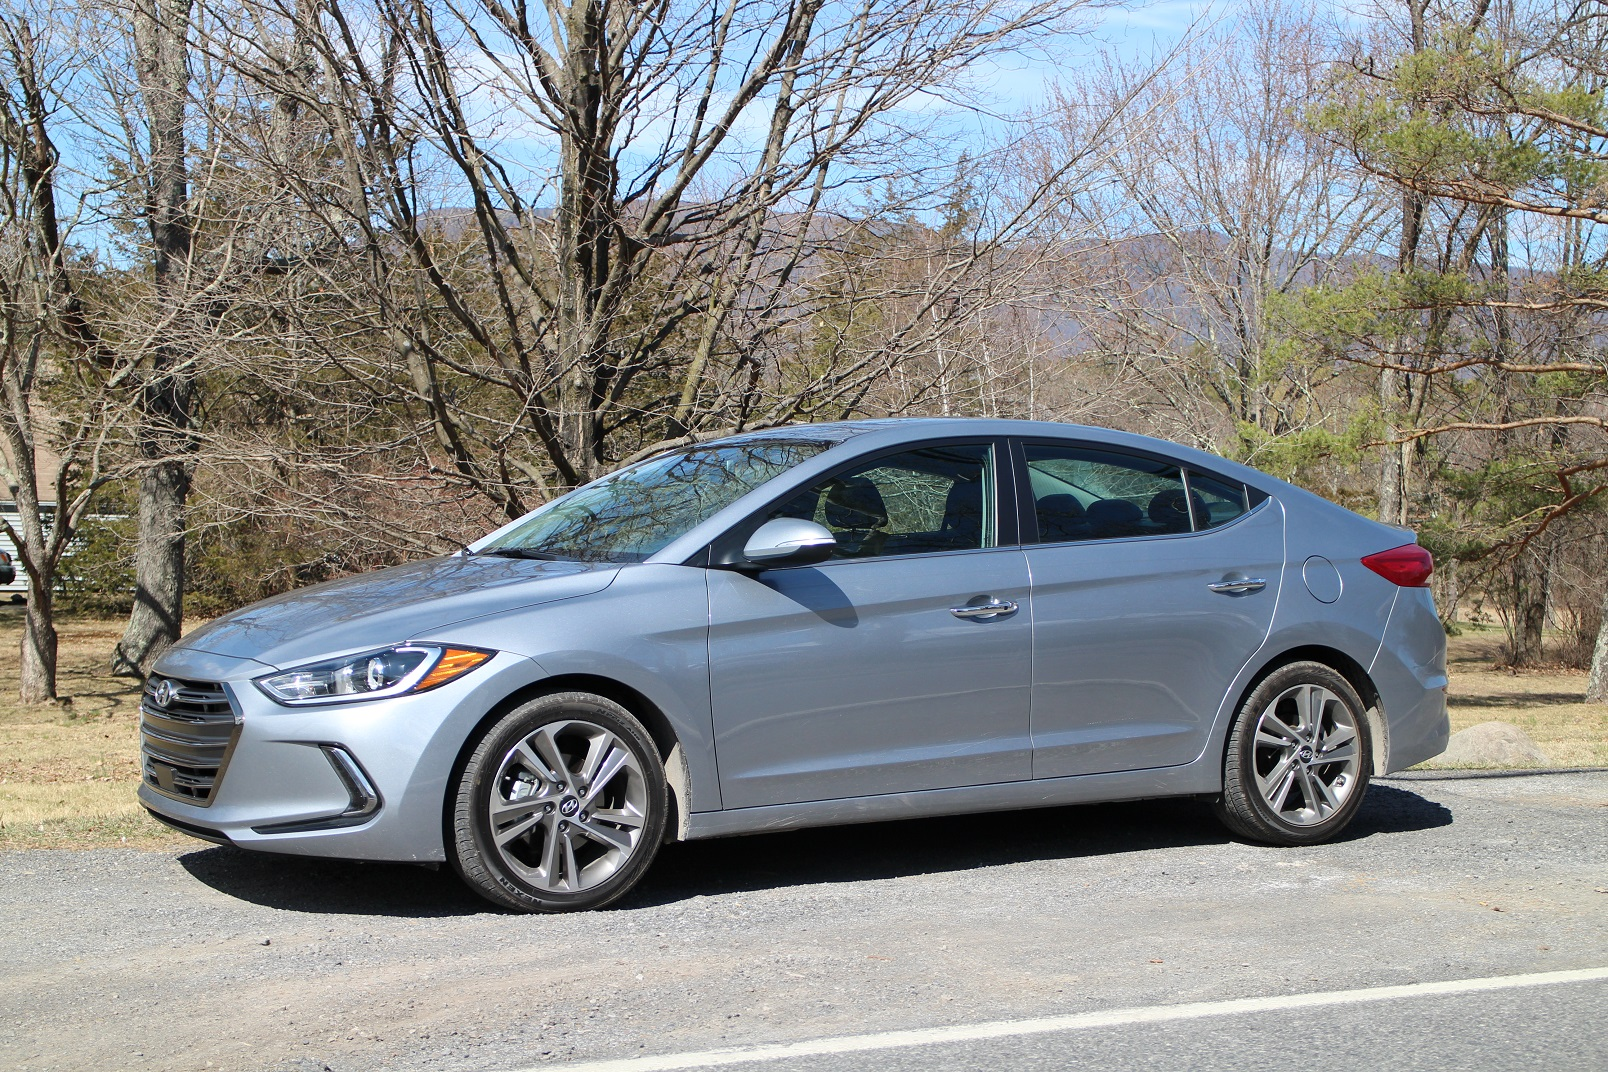 2017 hyundai elantra limited gas mileage review. Black Bedroom Furniture Sets. Home Design Ideas